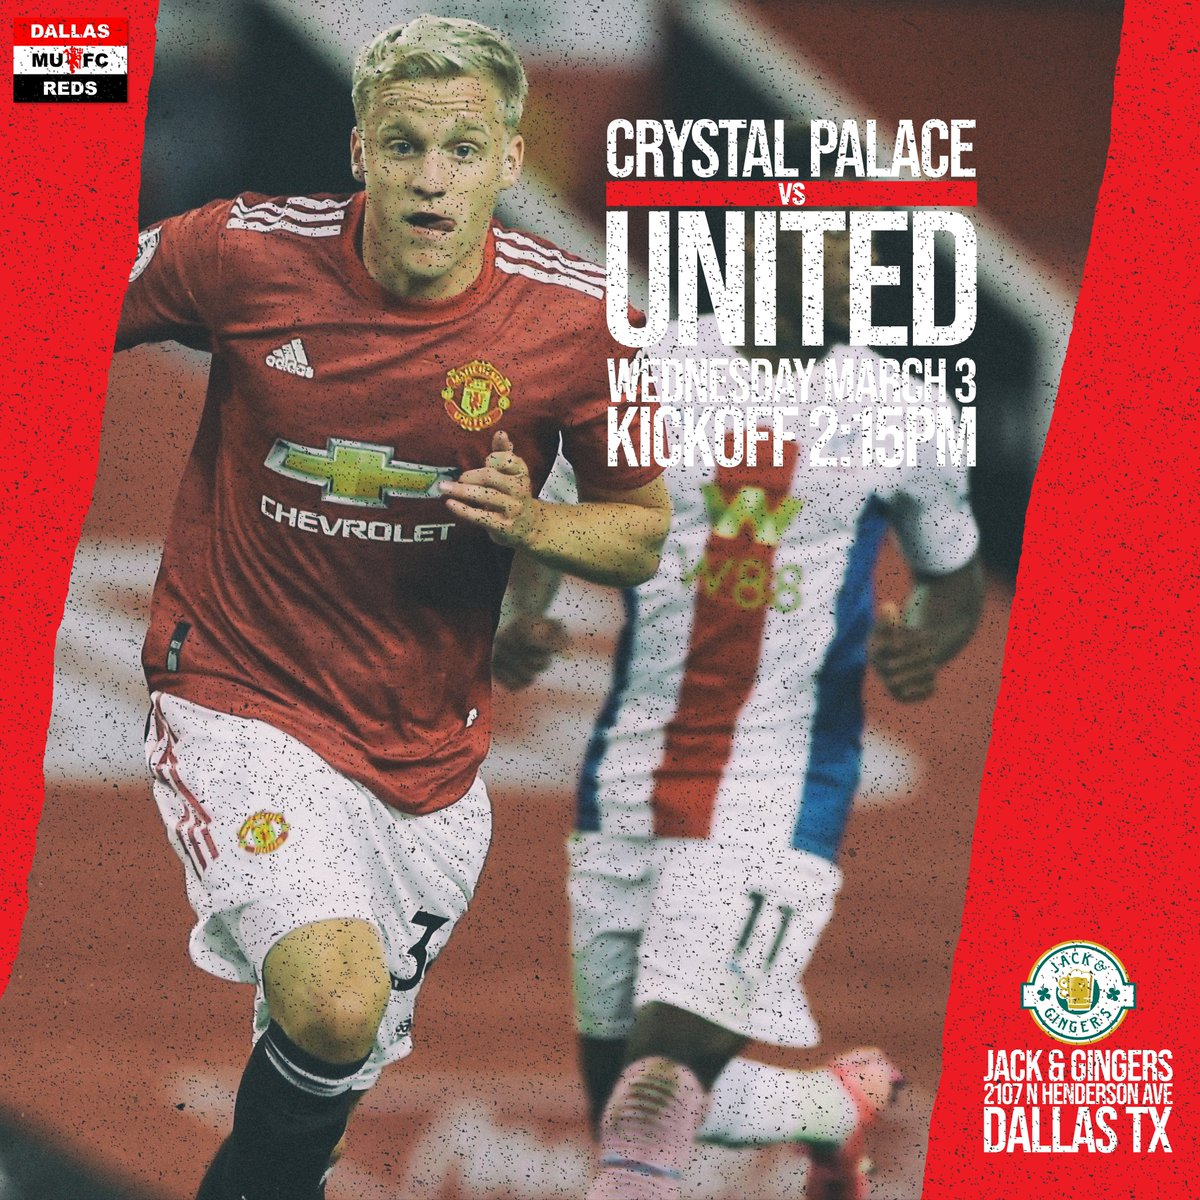 Games keep coming thick and fast and next up is #CRYMUN in the @premierleague  Come join the official #MUSC of #DFW #jacks #Dallas #Texas this Wednesday afternoon. Kickoff at 2:15pm. Event in bio - Click 'Going' and share with your friends. #UTFR #MUFC #DallasReds @PLinUSA